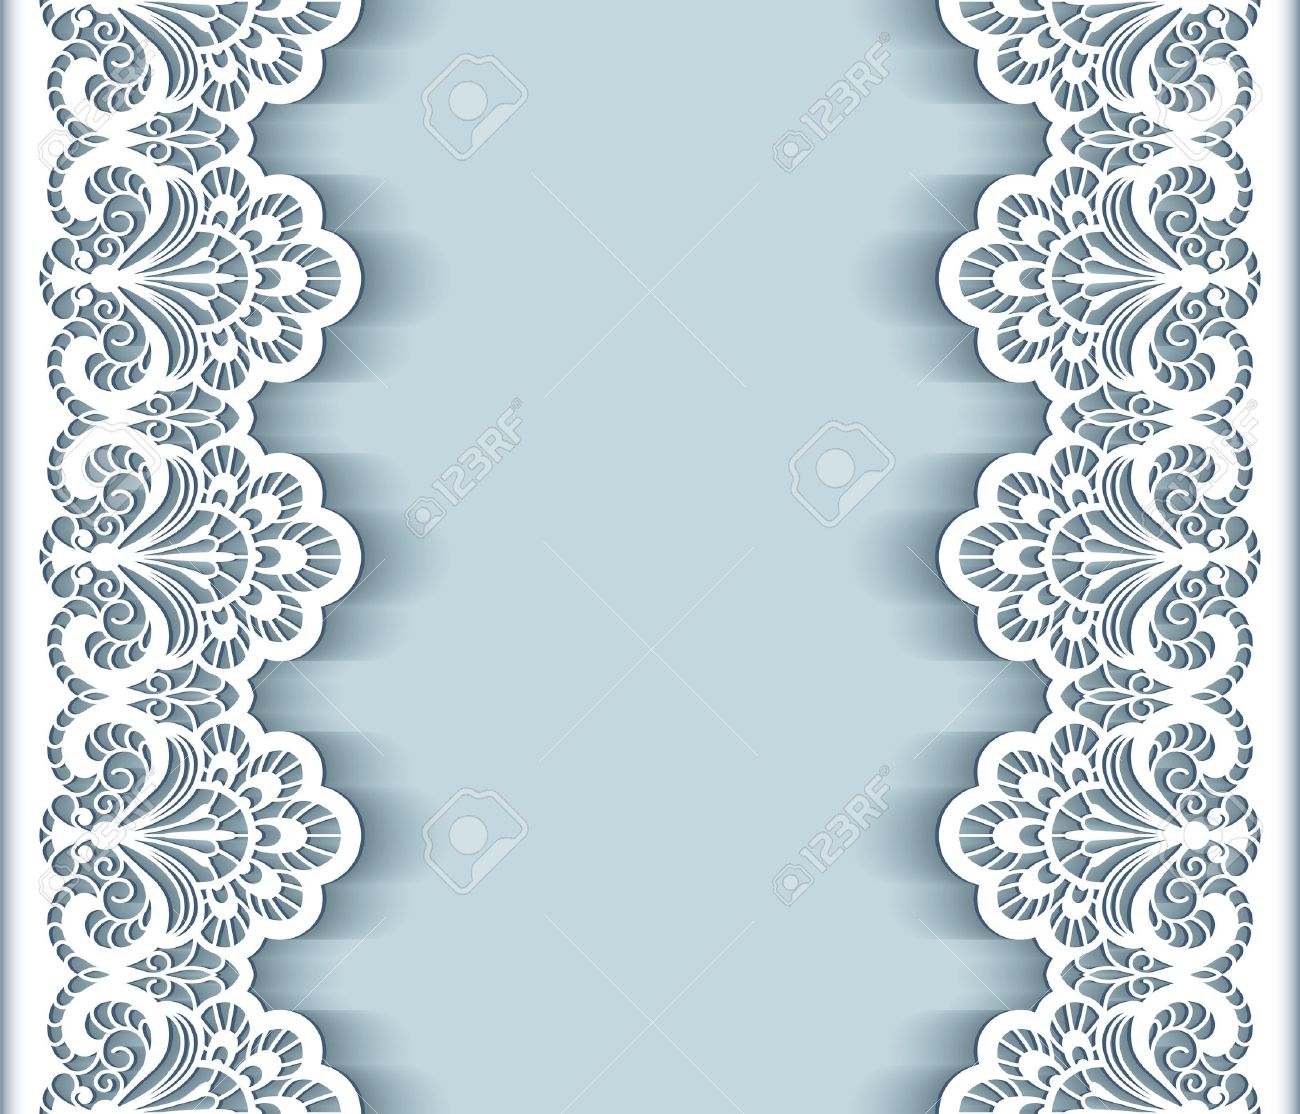 Elegant Background With Cutout Paper Lace Borders Greeting Card – Border Paper Template